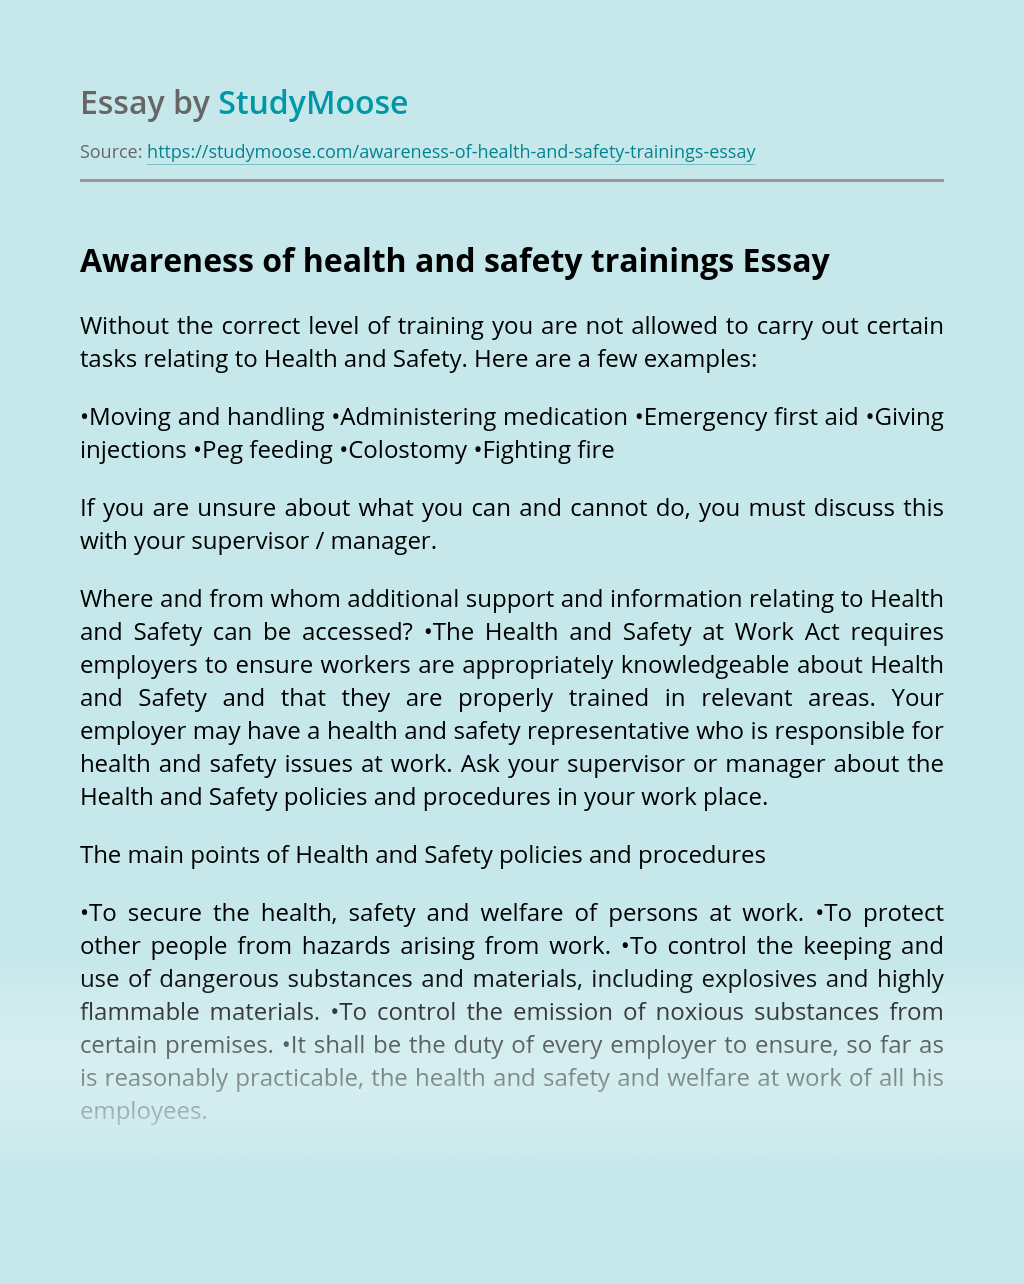 Awareness of health and safety trainings